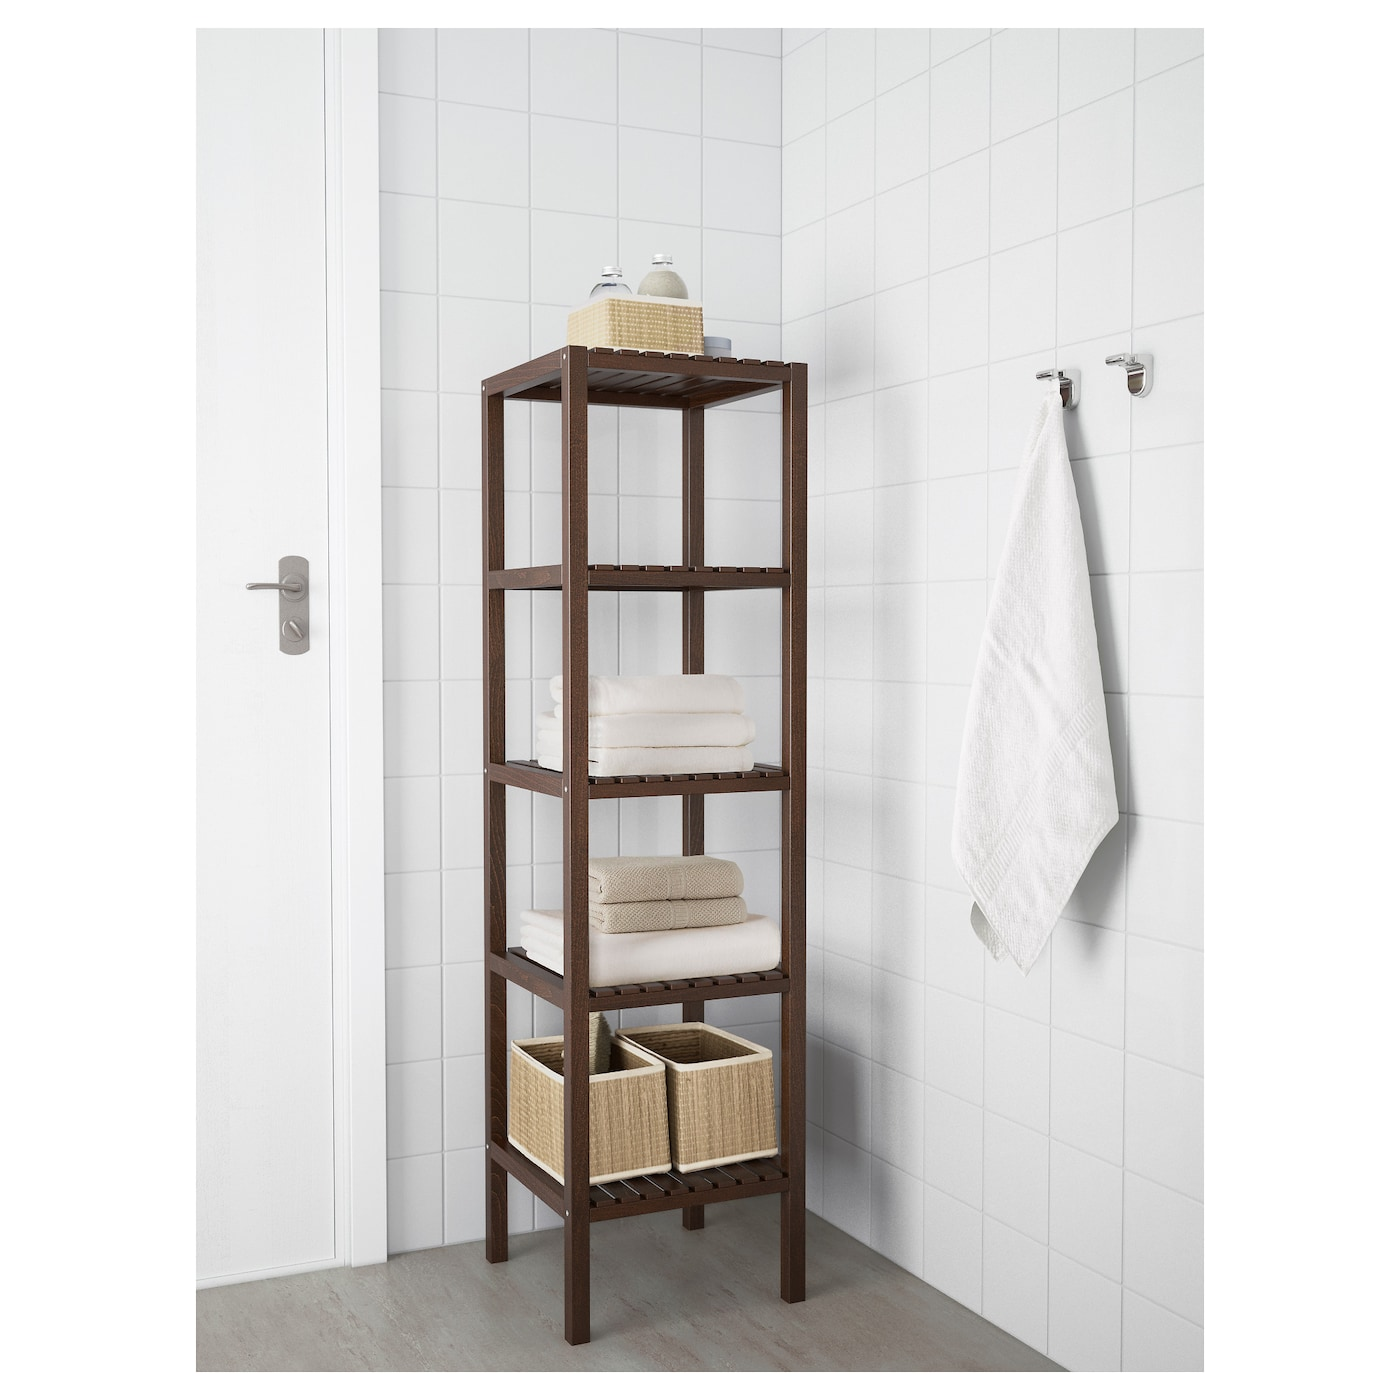 Molger shelving unit dark brown 37x140 cm ikea Open shelving